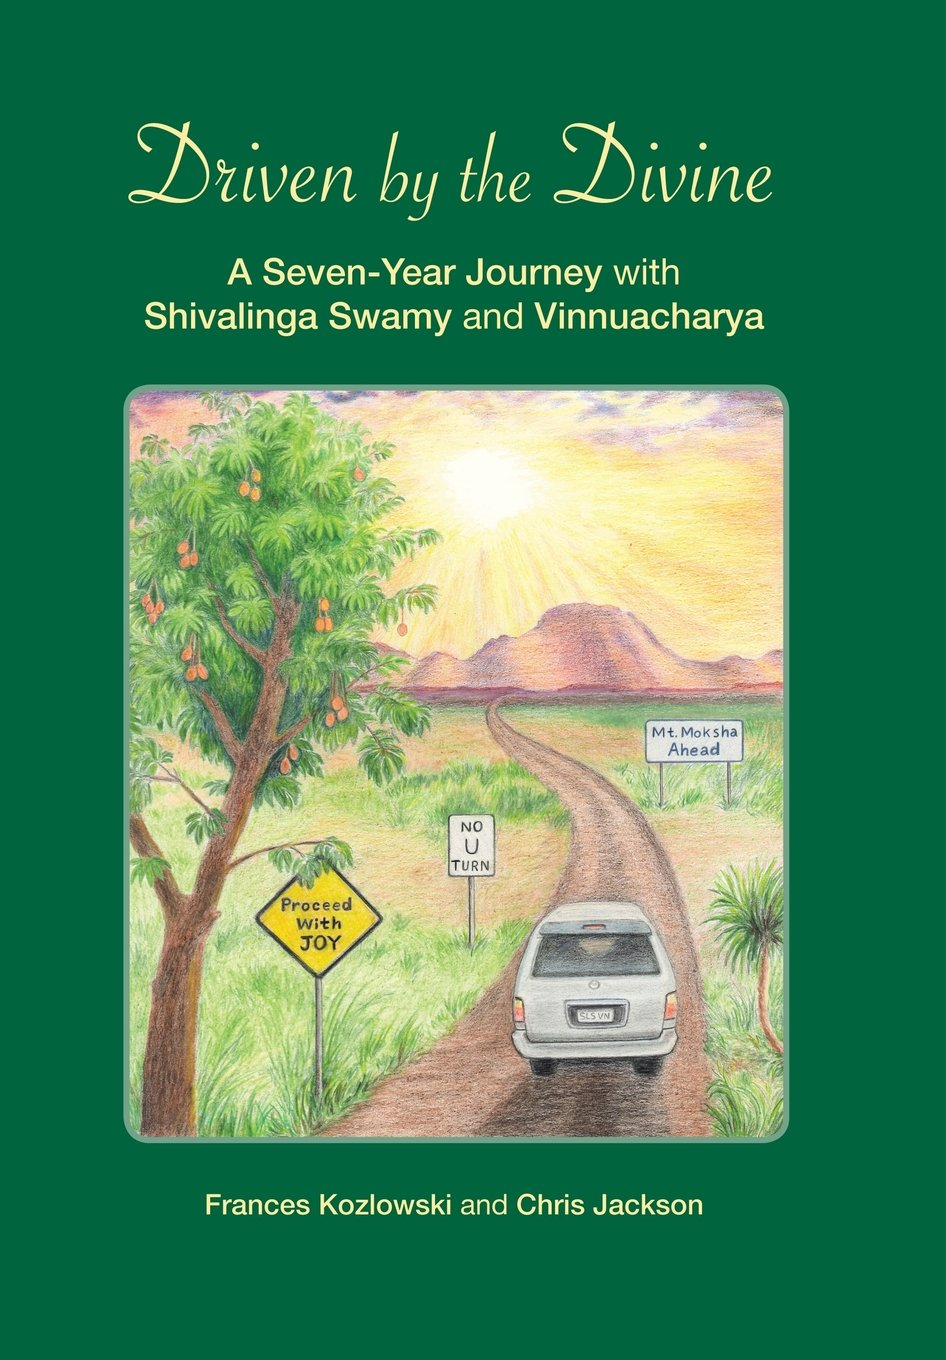 Download Driven by the Divine: A Seven-Year Journey with Shivalinga Swamy and Vinnuacharya ebook